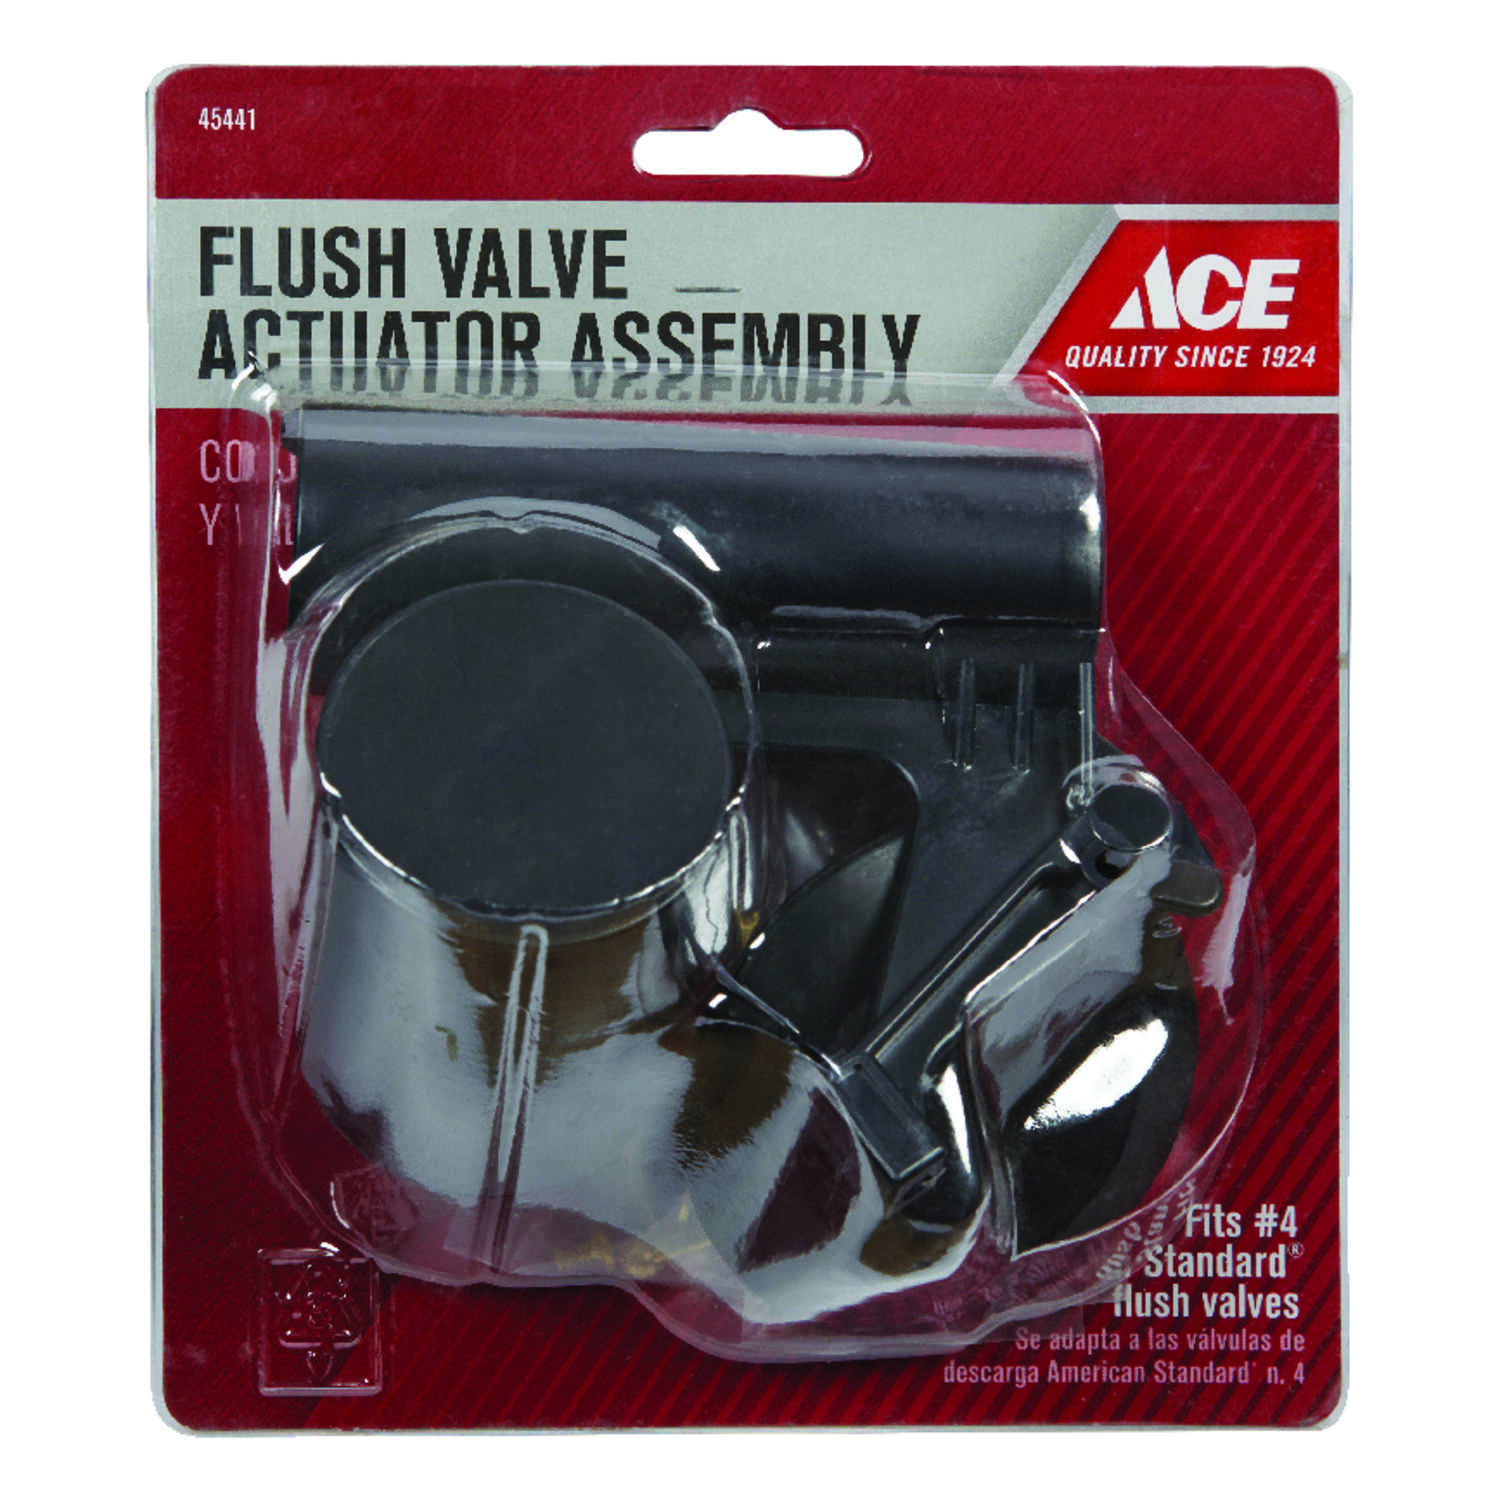 Ace  Flush Valve Acuator Assembly  Stainless Steel